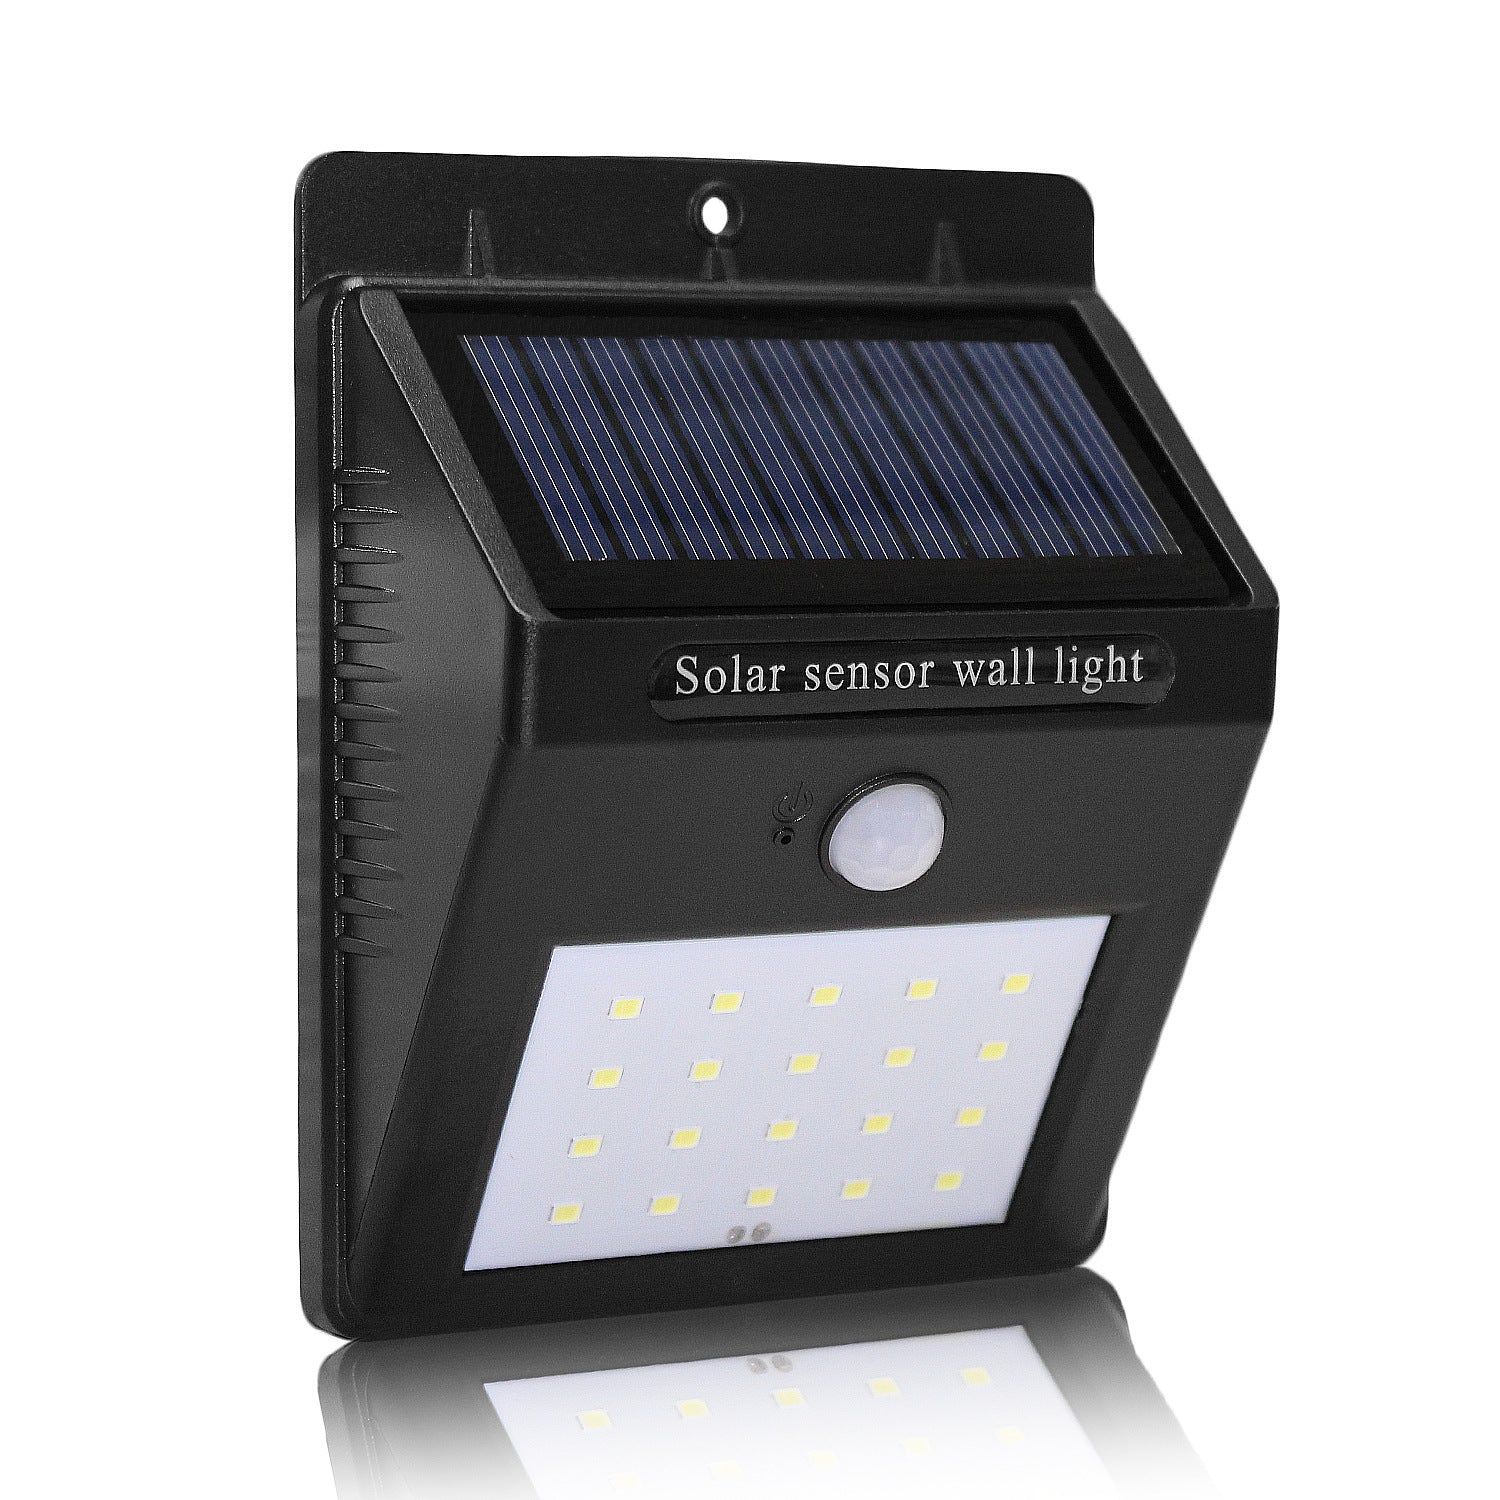 Bing New Solar Motion Sensor Wall Led Light No Wiring Required